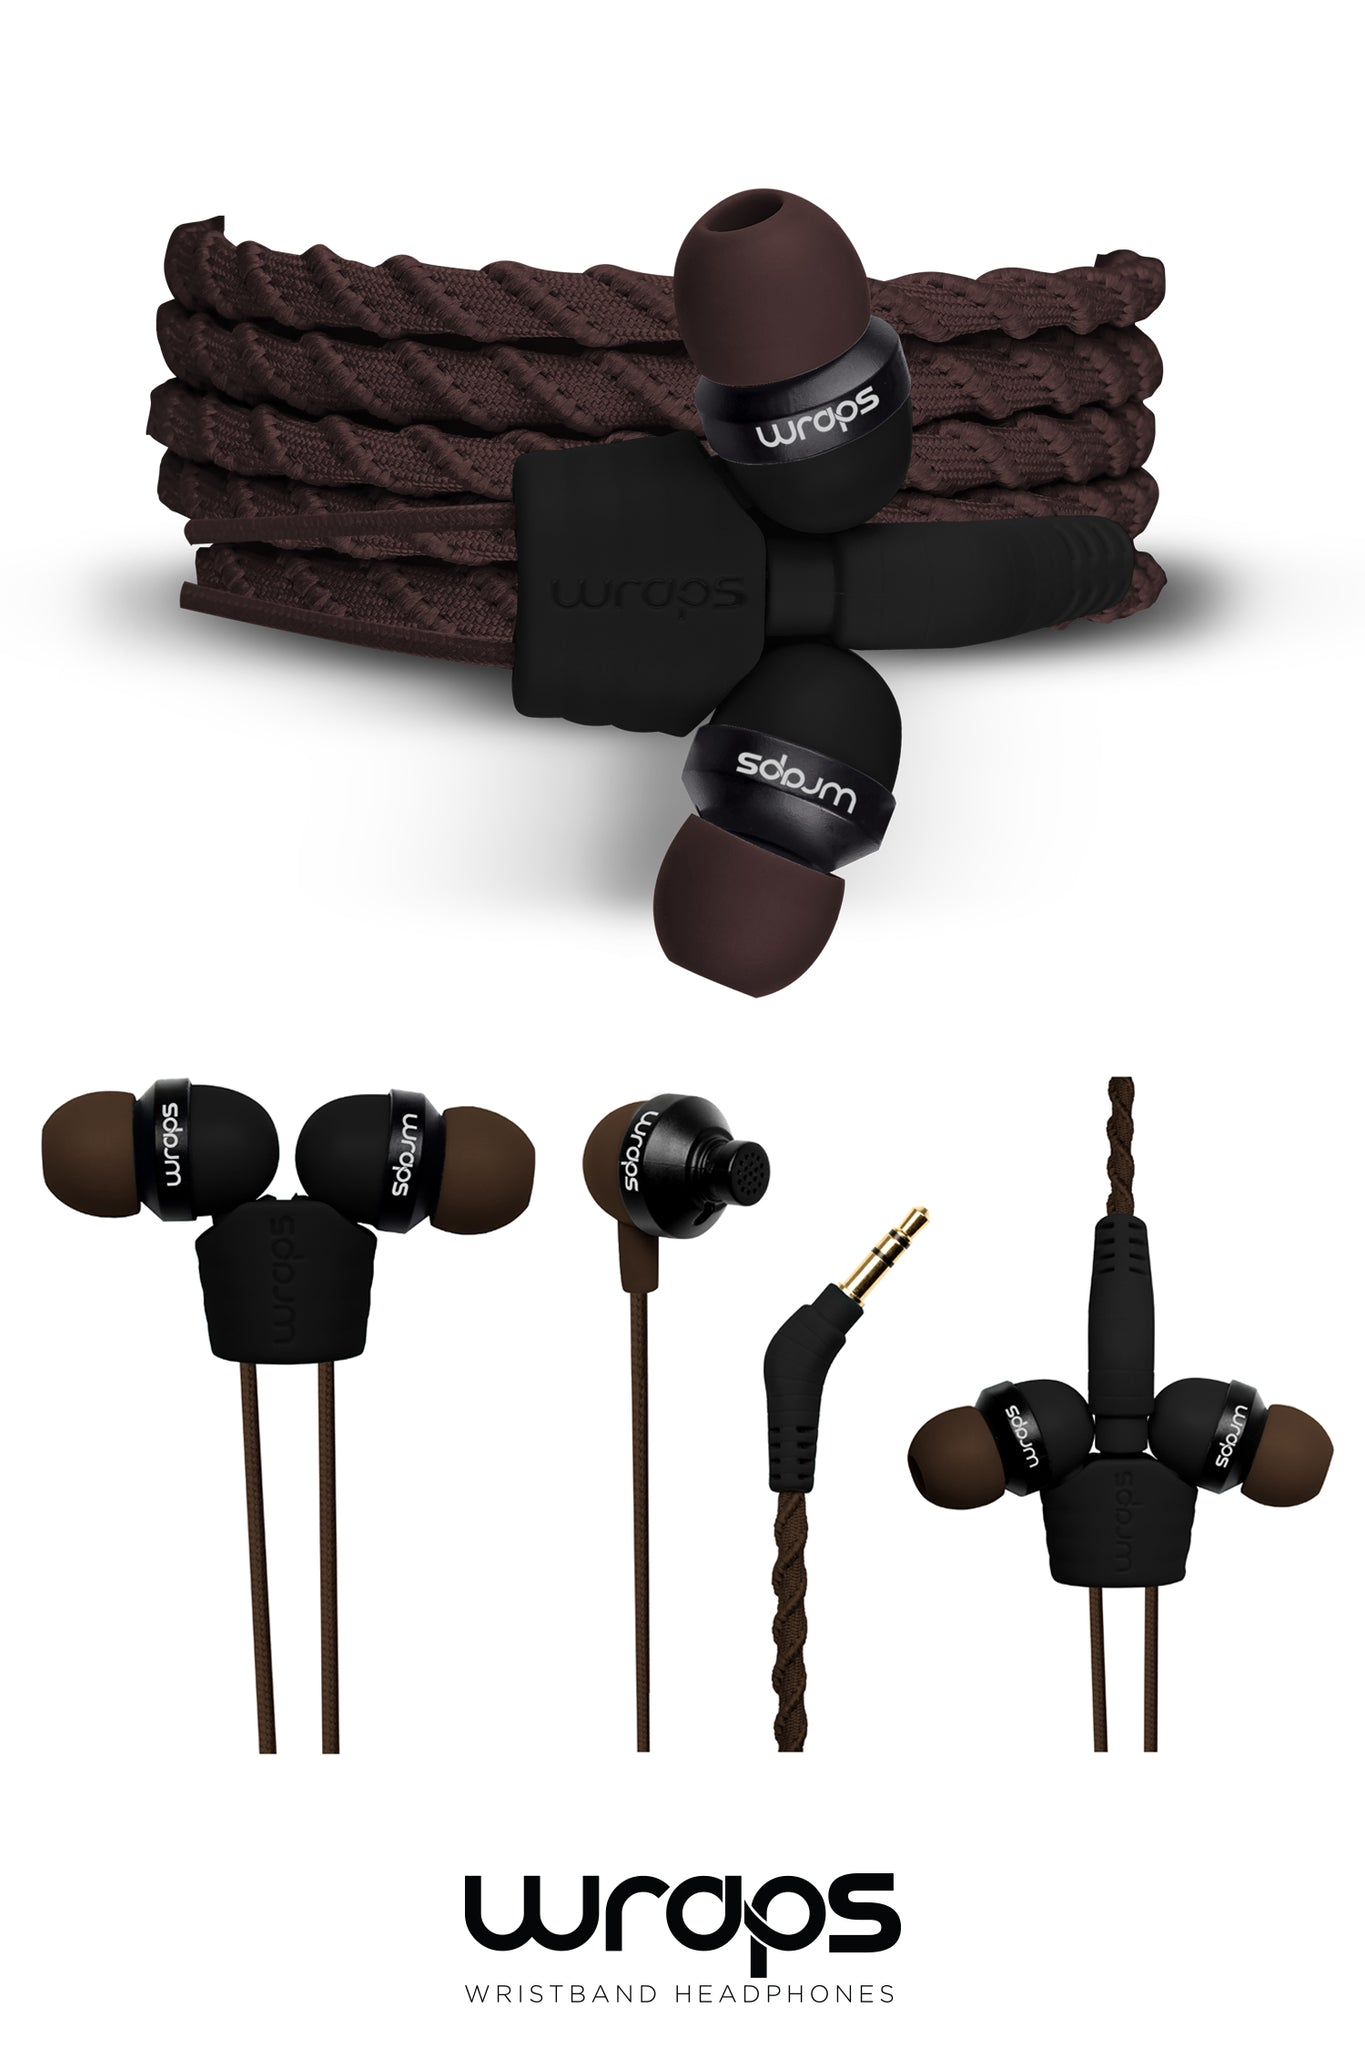 WRAPS Classic In-ear Headphones